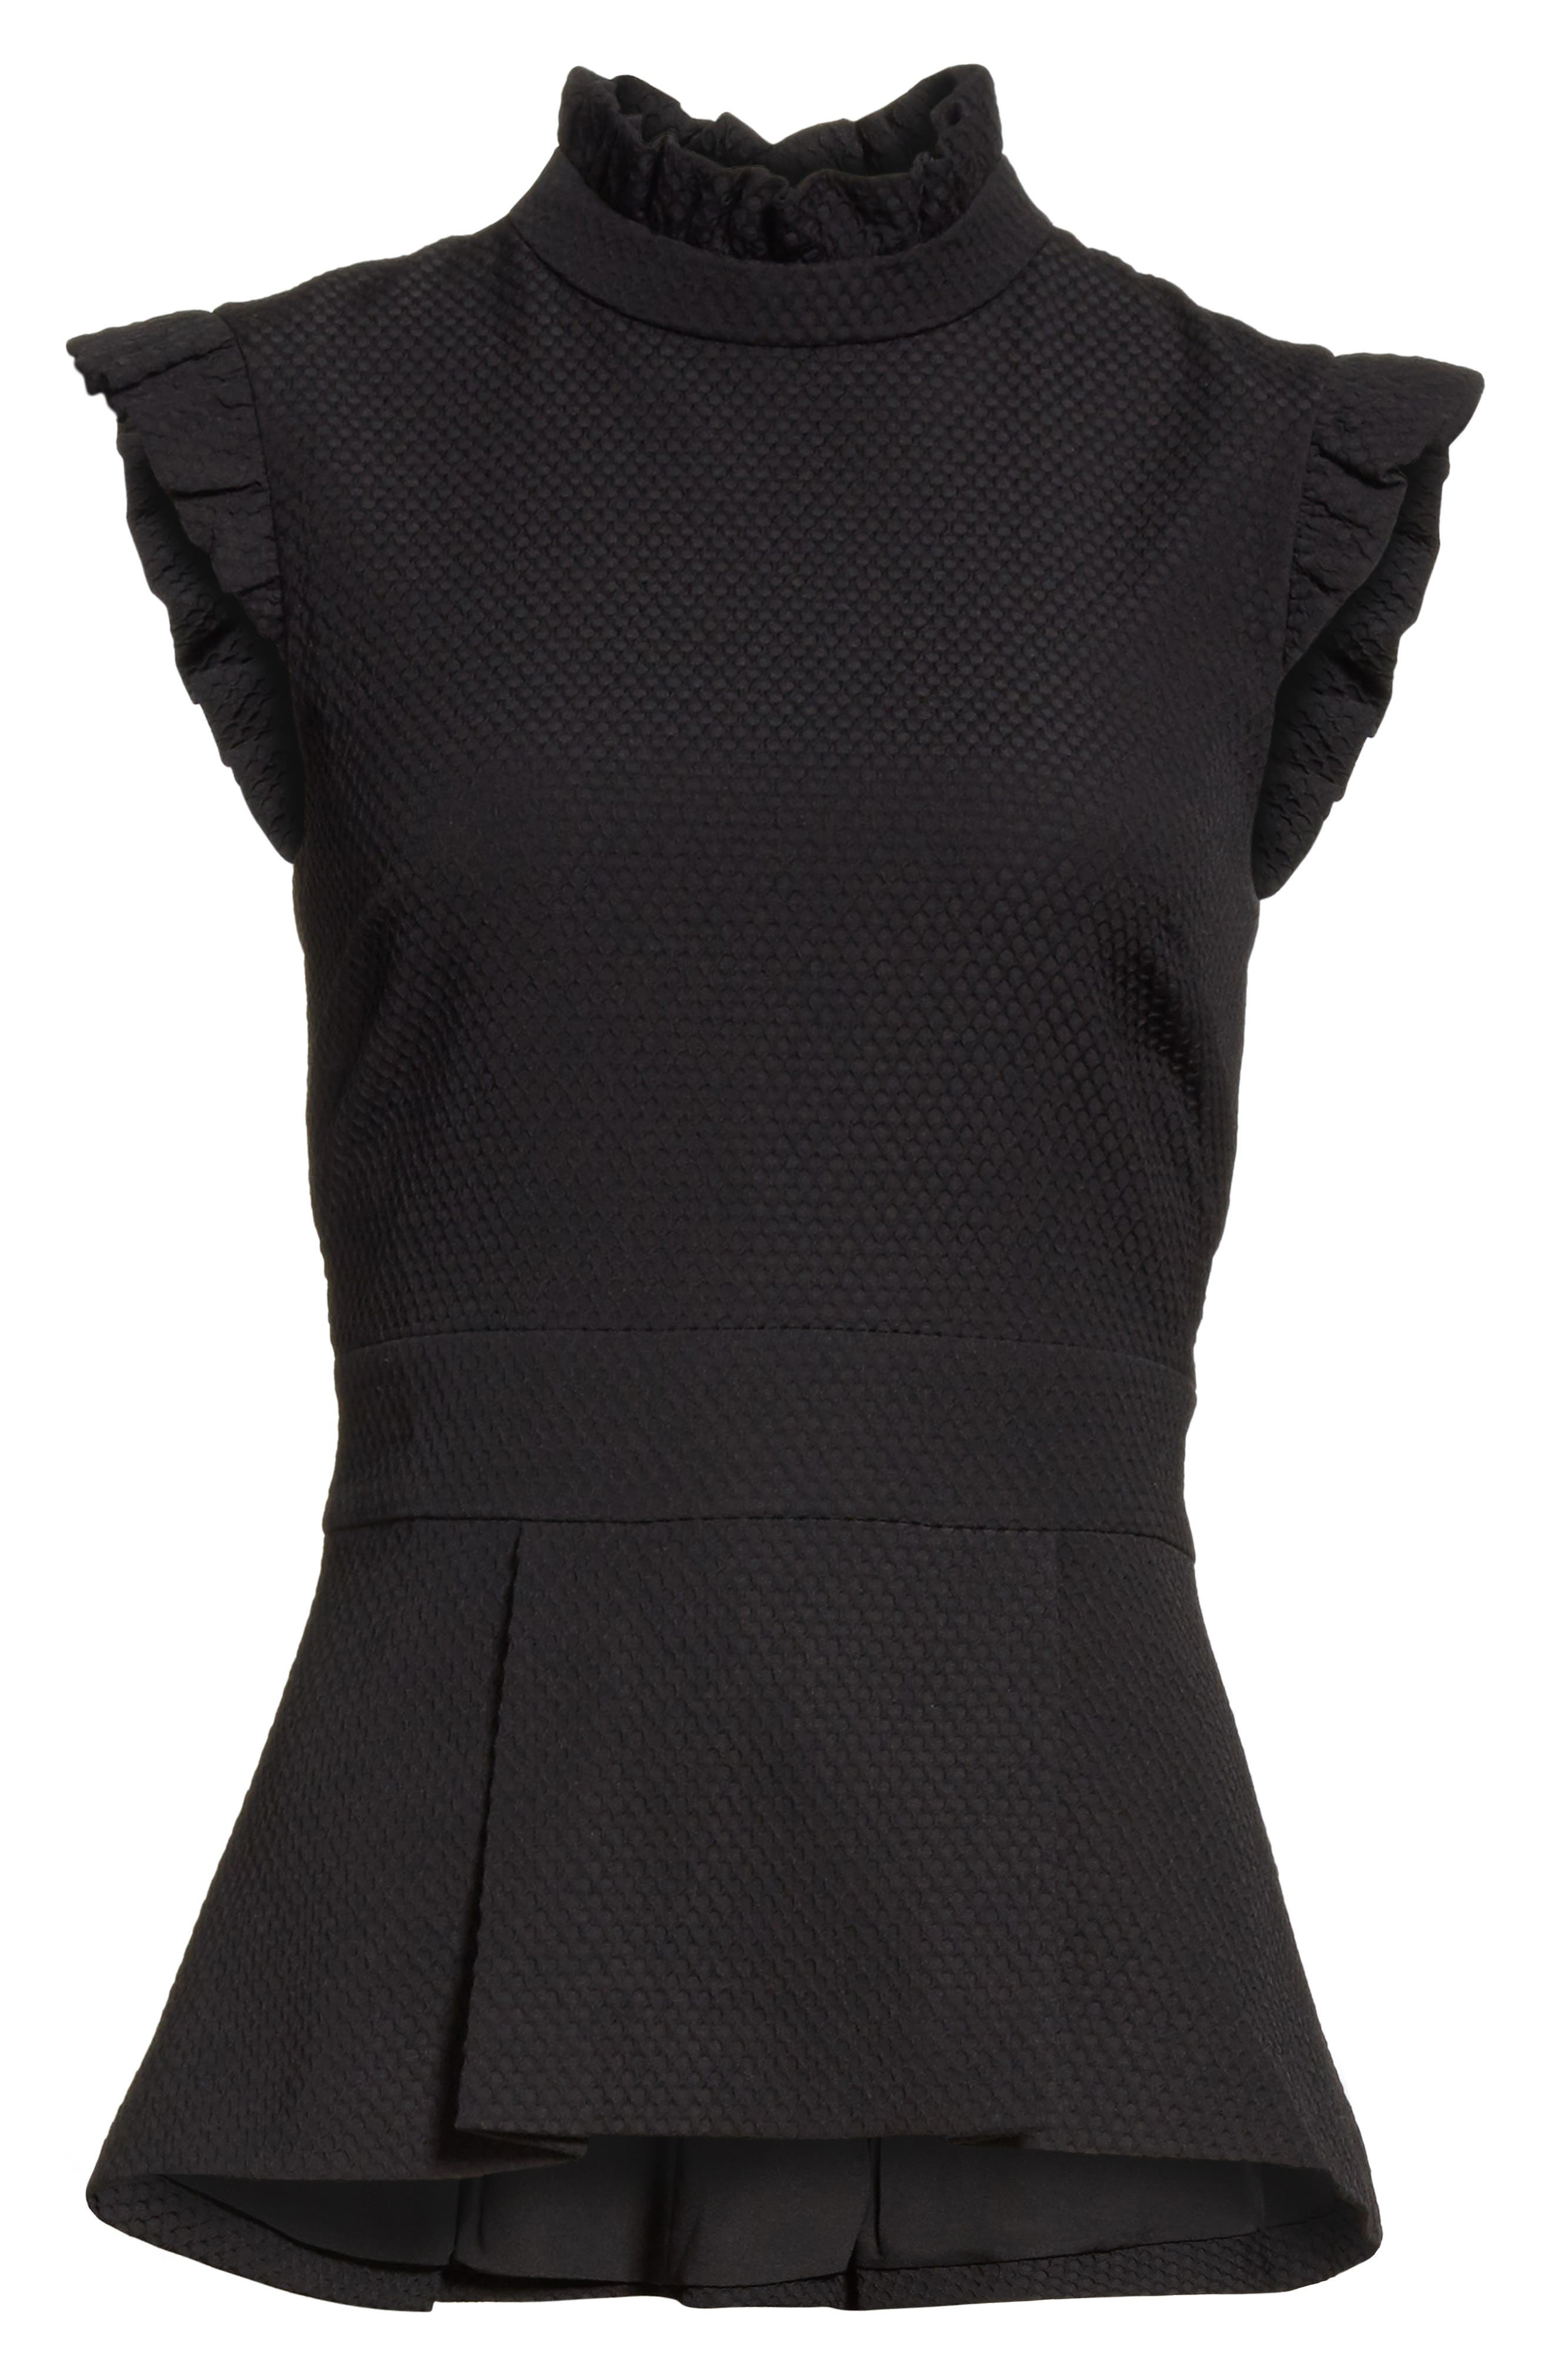 Ruffle Neck Peplum Top,                             Alternate thumbnail 6, color,                             Black